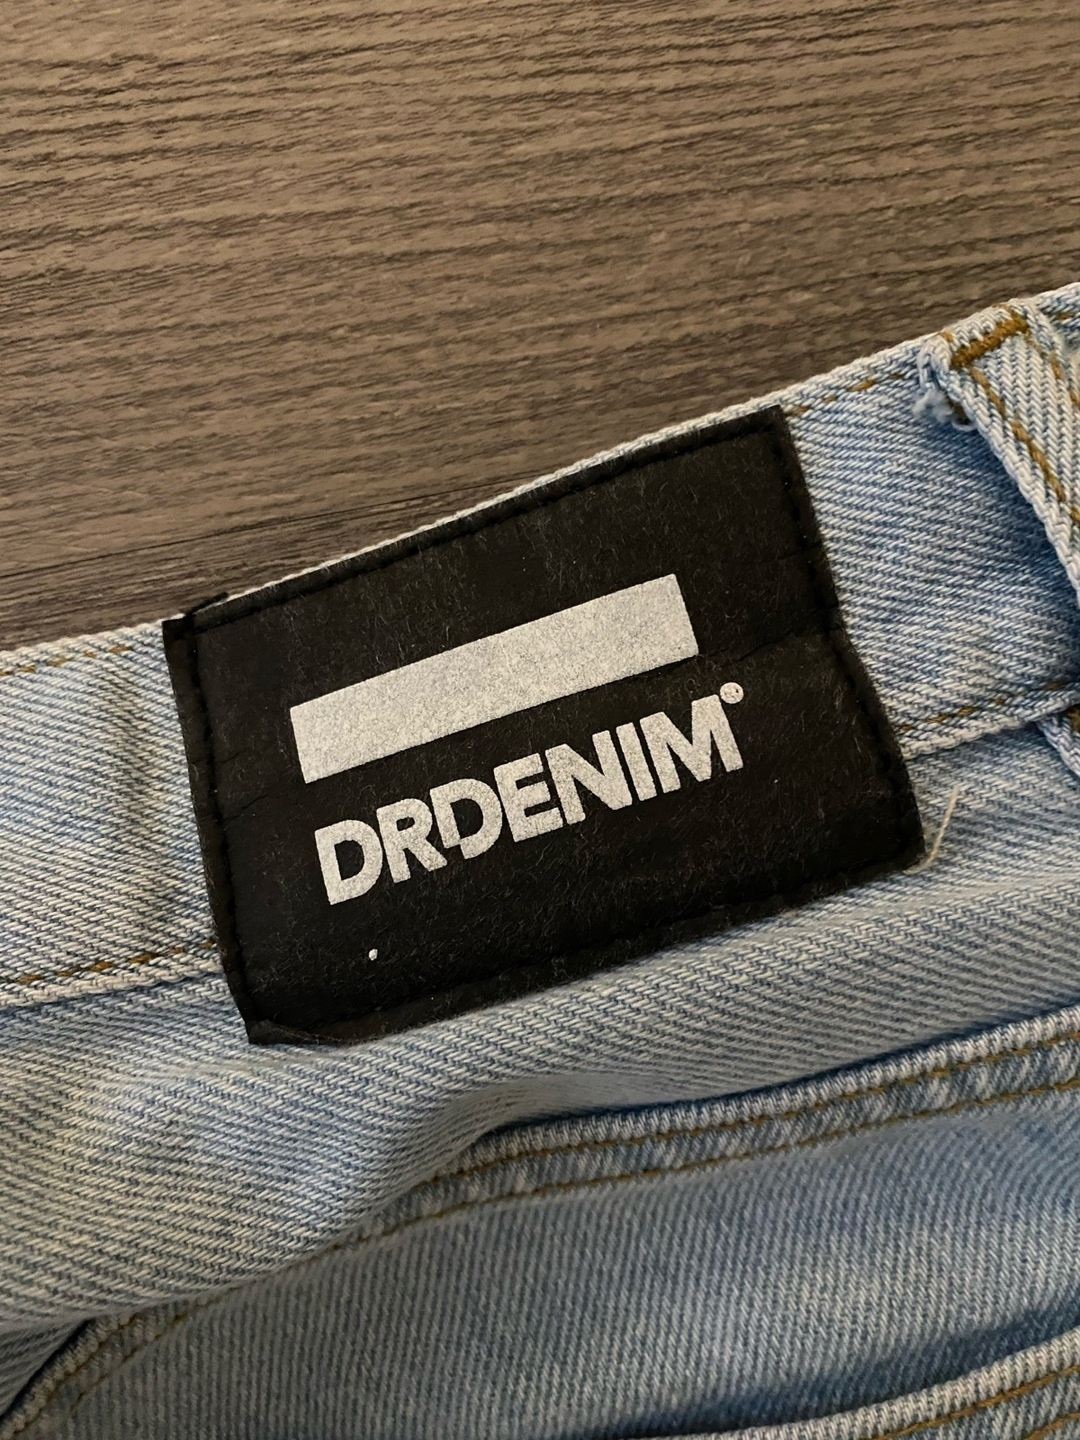 Damen hosen & jeans - DR. DENIM photo 3